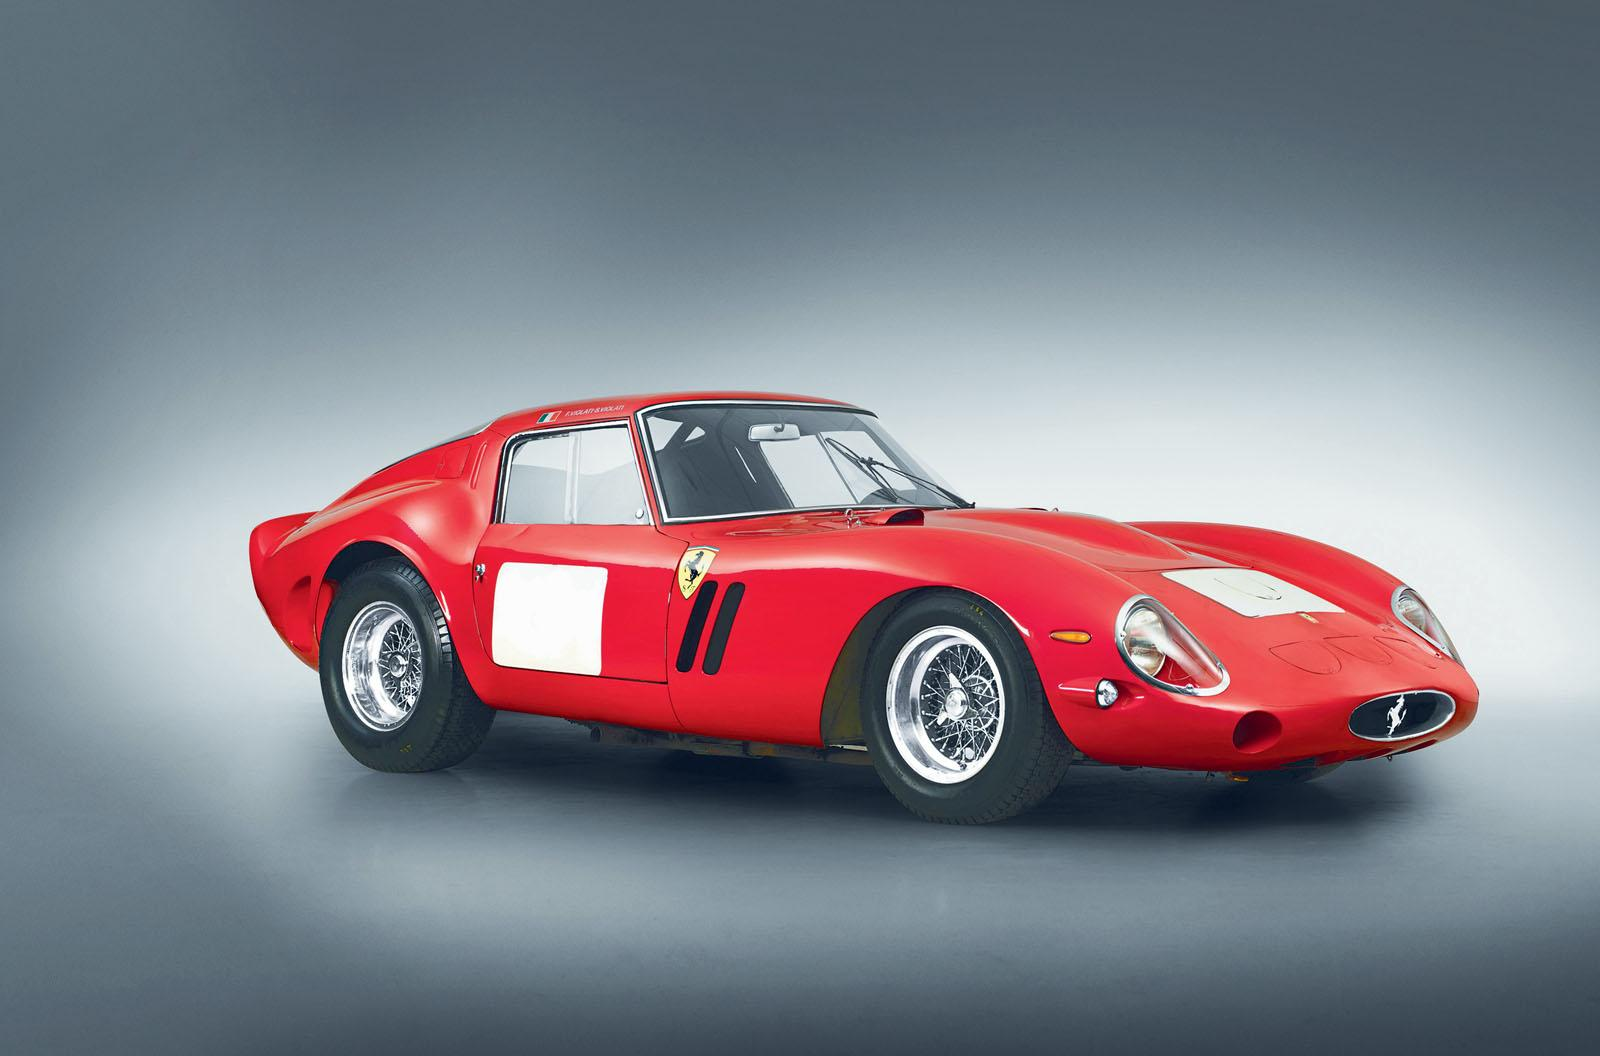 The Most Expensive Car On Auctions Last Year Was A Ferrari